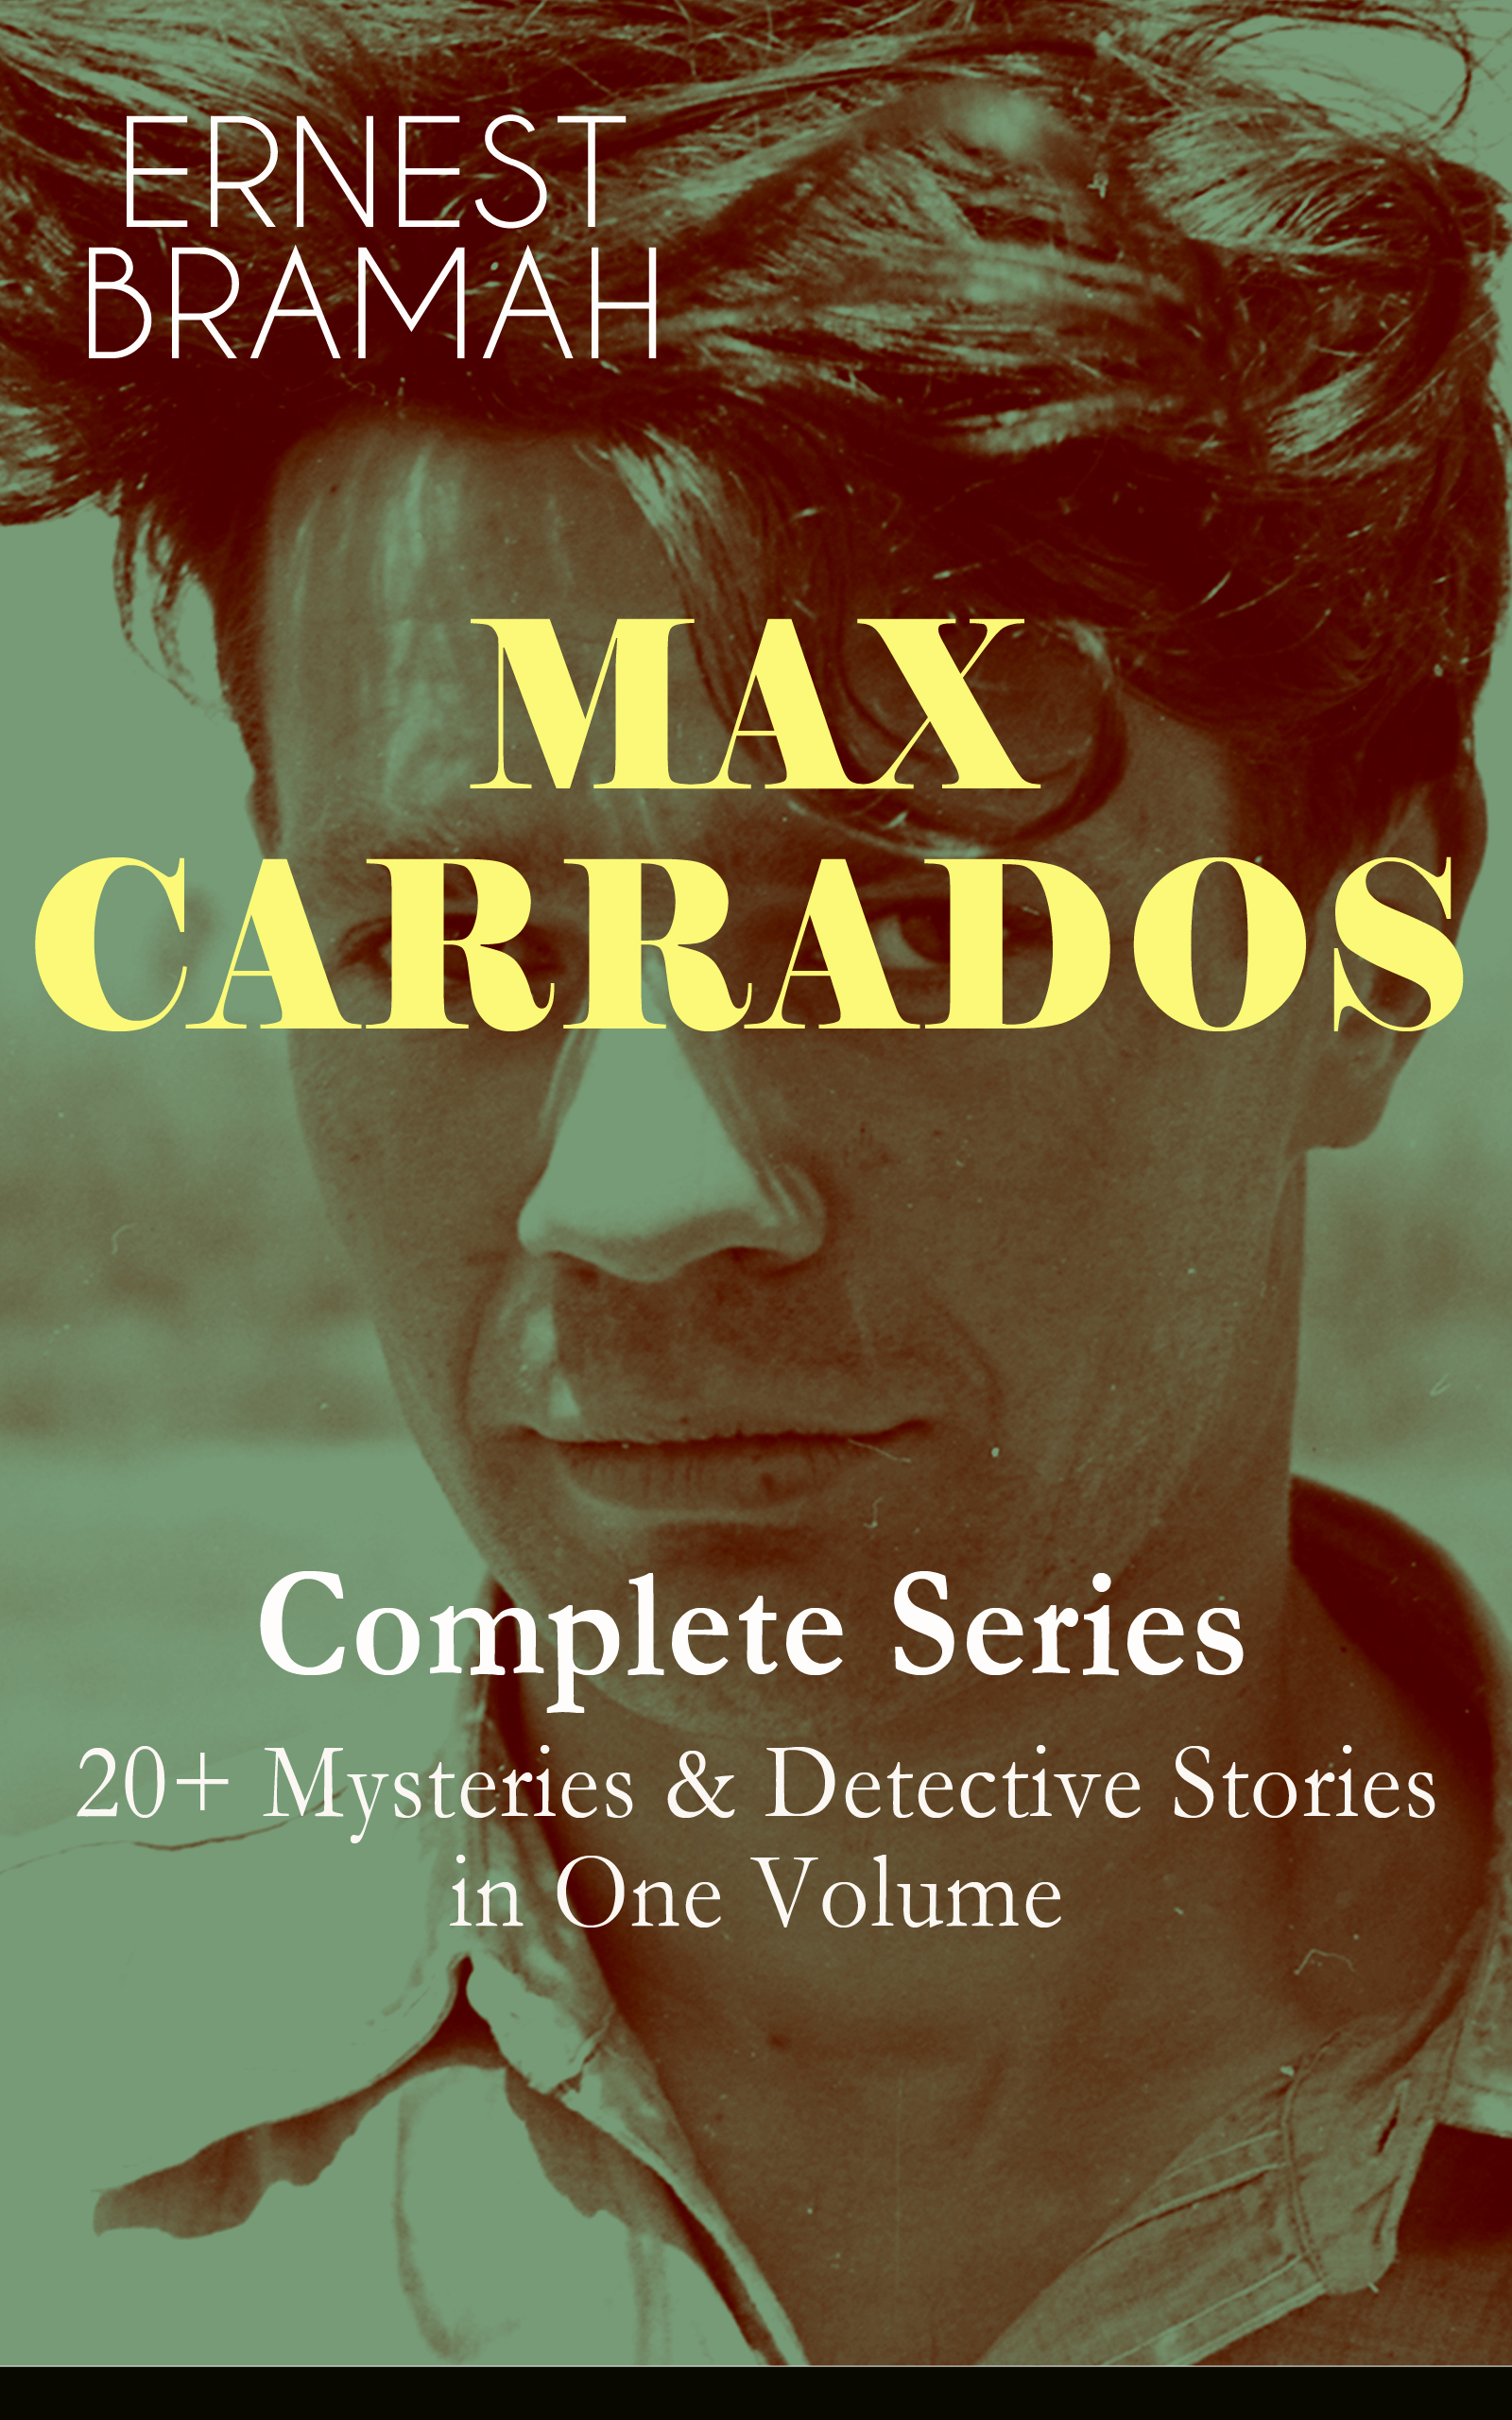 Bramah Ernest MAX CARRADOS - Complete Series: 20+ Mysteries & Detective Stories in One Volume bramah ernest the eyes of max carrados